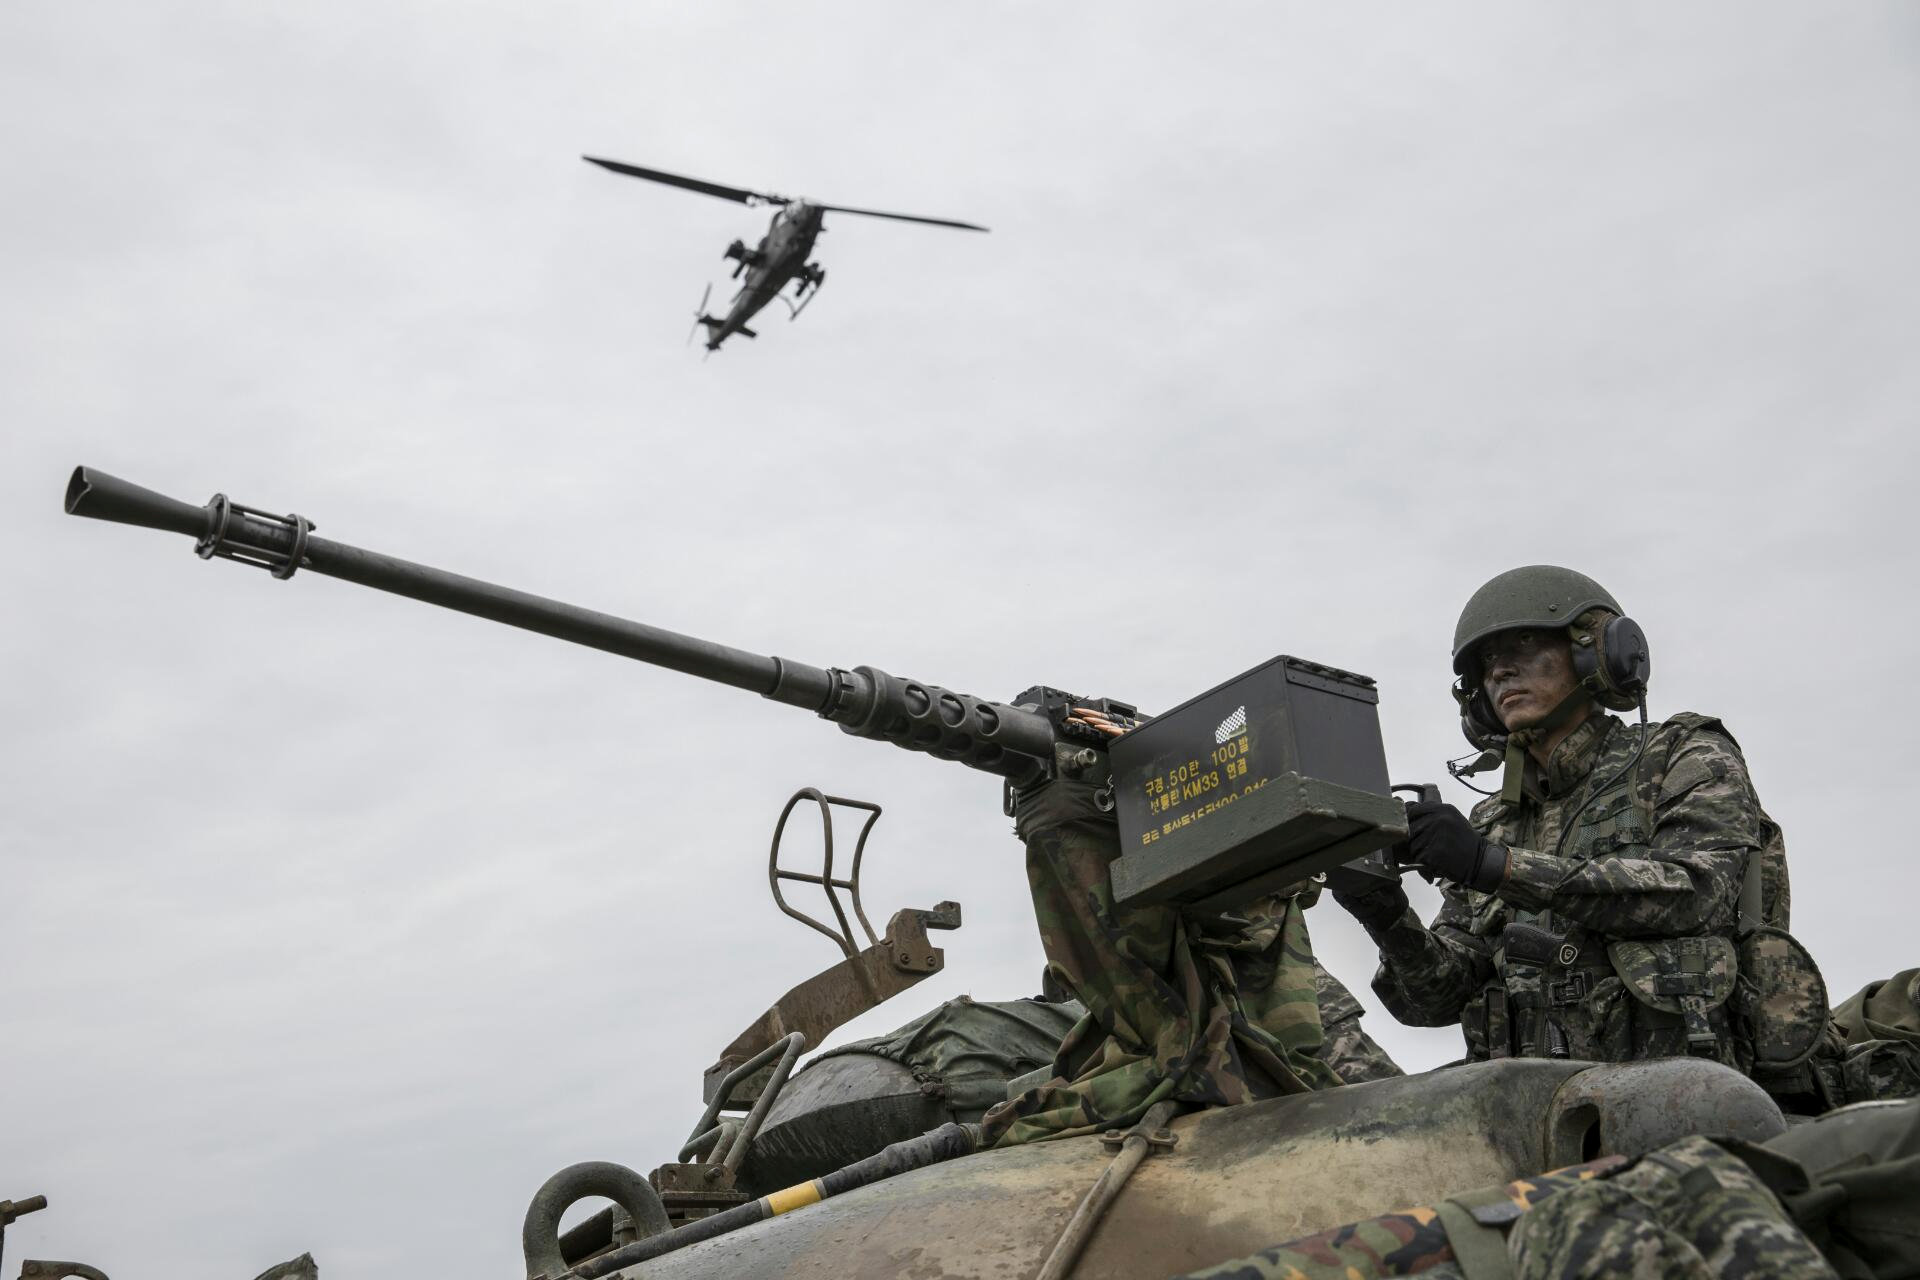 A South Korean marine takes part in a military exercise on South Korea's Baengnyeong Island, near the disputed sea border with the north, in this handout picture provided by South Korean Marine Corps and released by Yonhap on Sept. 7, 2017. (South Korean Marine Corps/Yonhap via REUTERS)